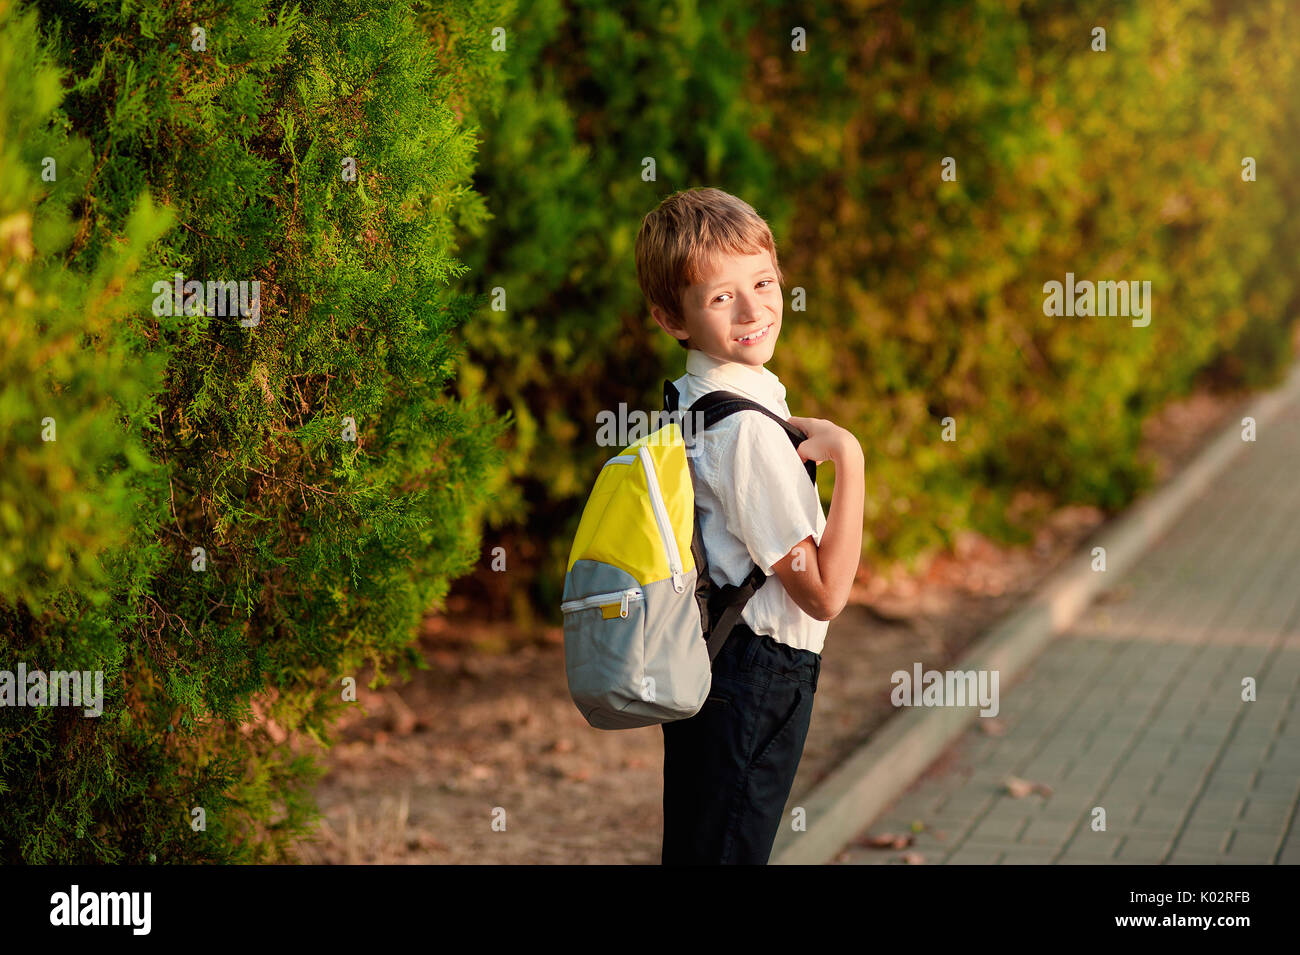 First day at school. Elementary Student, Little Boys, Backpack. - Stock Image